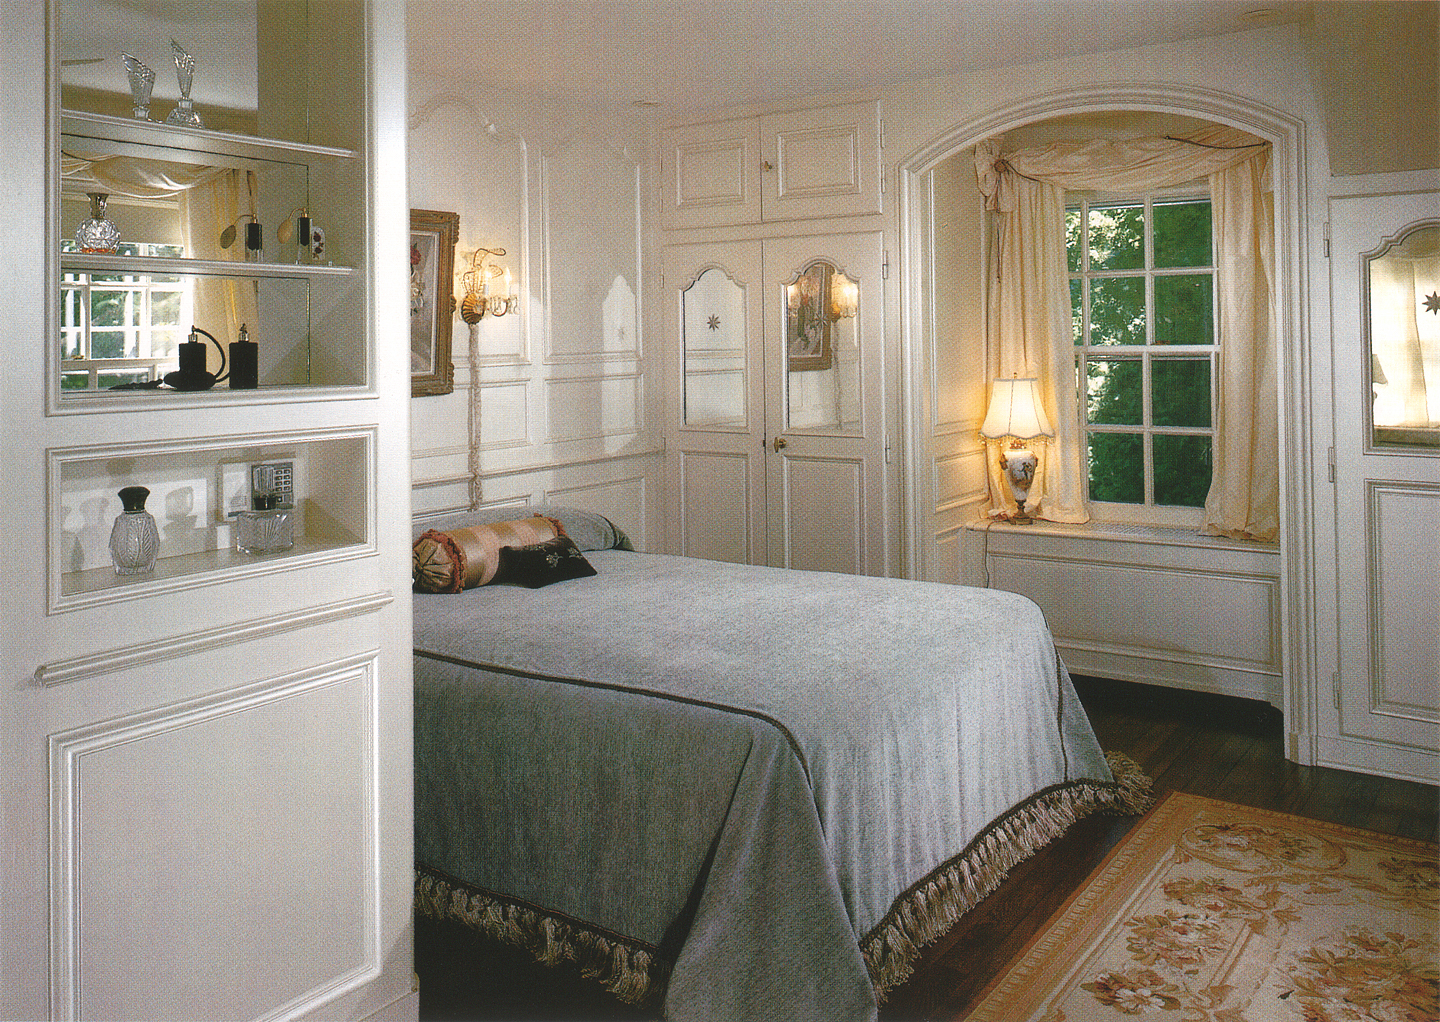 (above) Mrs. Adler's bedroom, as designed by David Adler, was the inspiration for my dressing room's mirrored paneled closet doors.